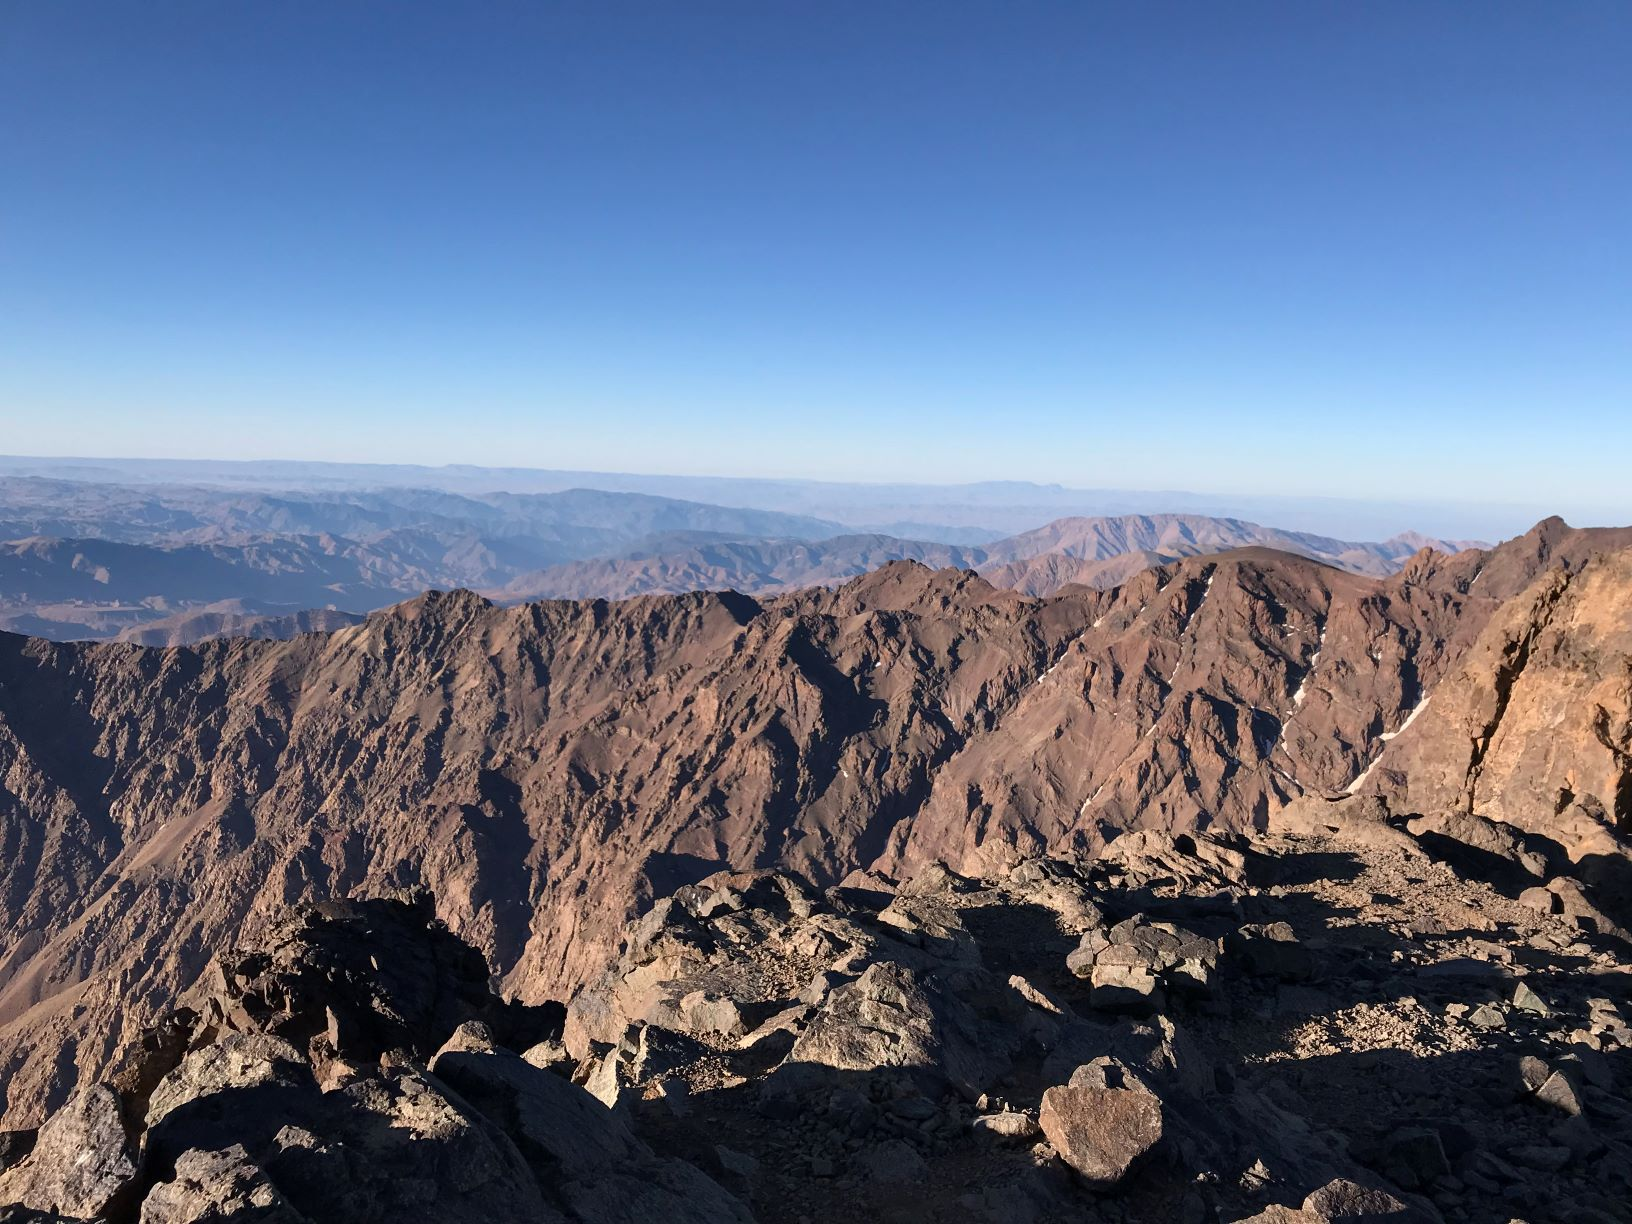 View From Summit of Jebel Toubkal